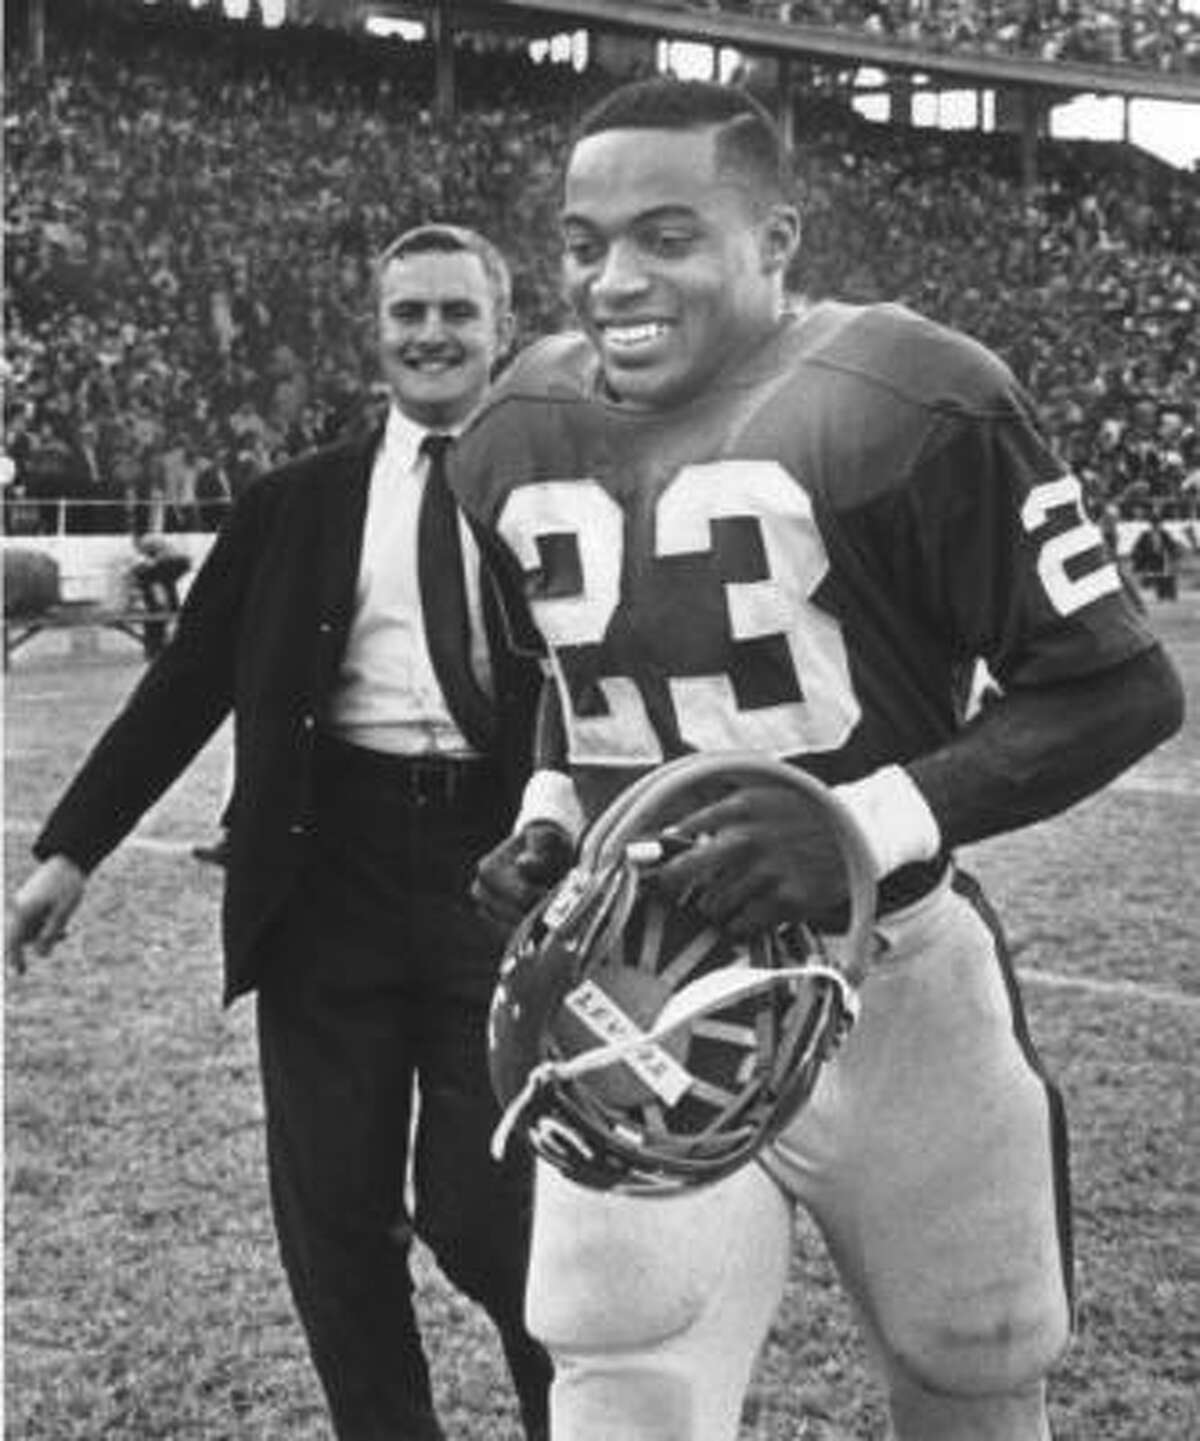 Southern Methodist player Jerry LeVias runs off the field at the Cotton Bowl in Dallas in this Nov. 5, 1966, file photo. LeVias broke the Southwest Conference color line in 1966, and he along with Hayden Fry, the coach who brought him to SMU in a time of racial upheaval, were inducted into the College Football Hall of Fame together.